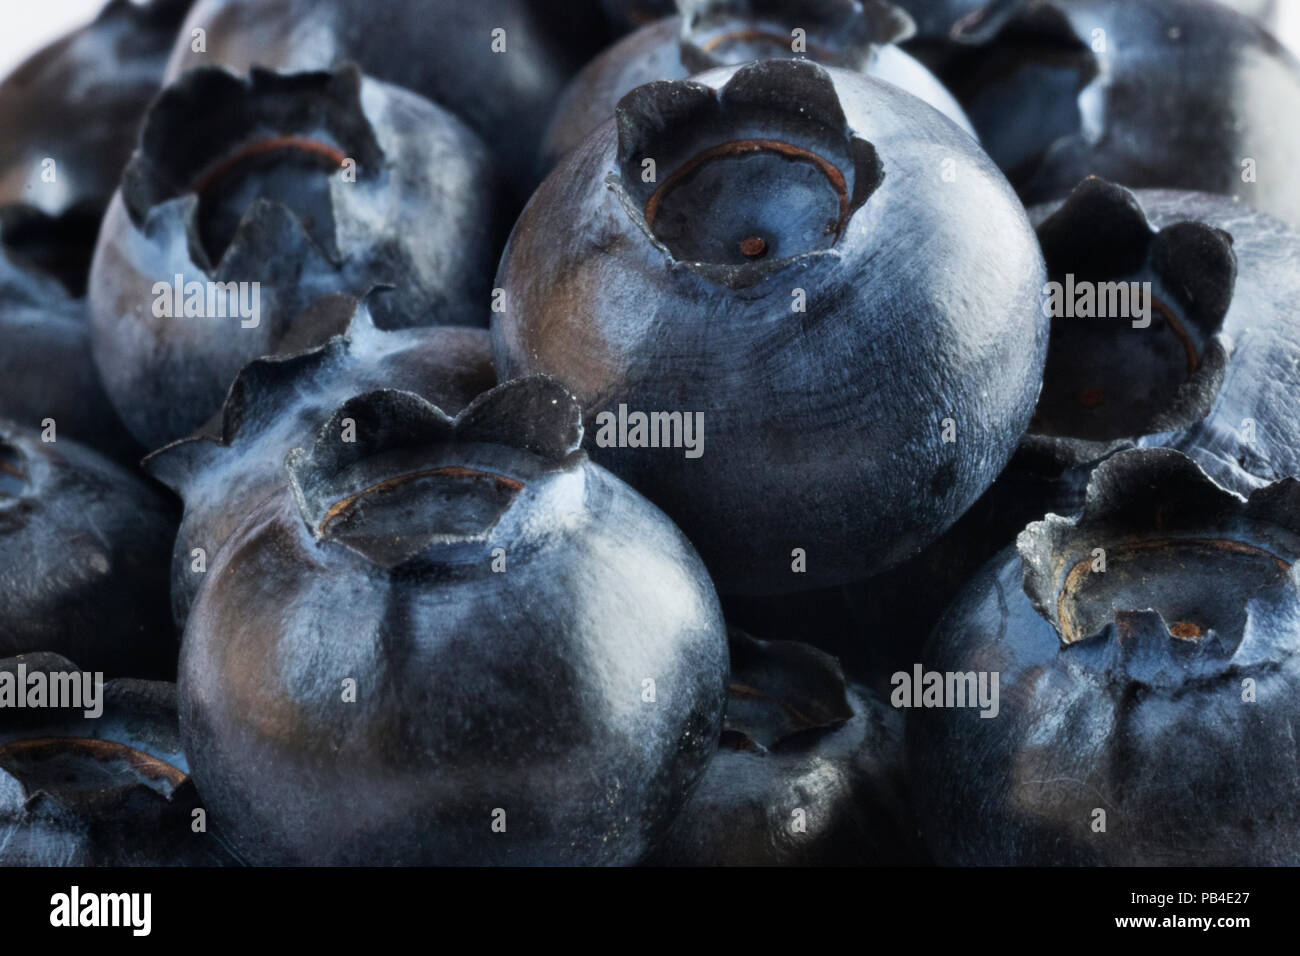 A lot of bilberries  ,studio shot  ,selective focus ,light contrast - Stock Image